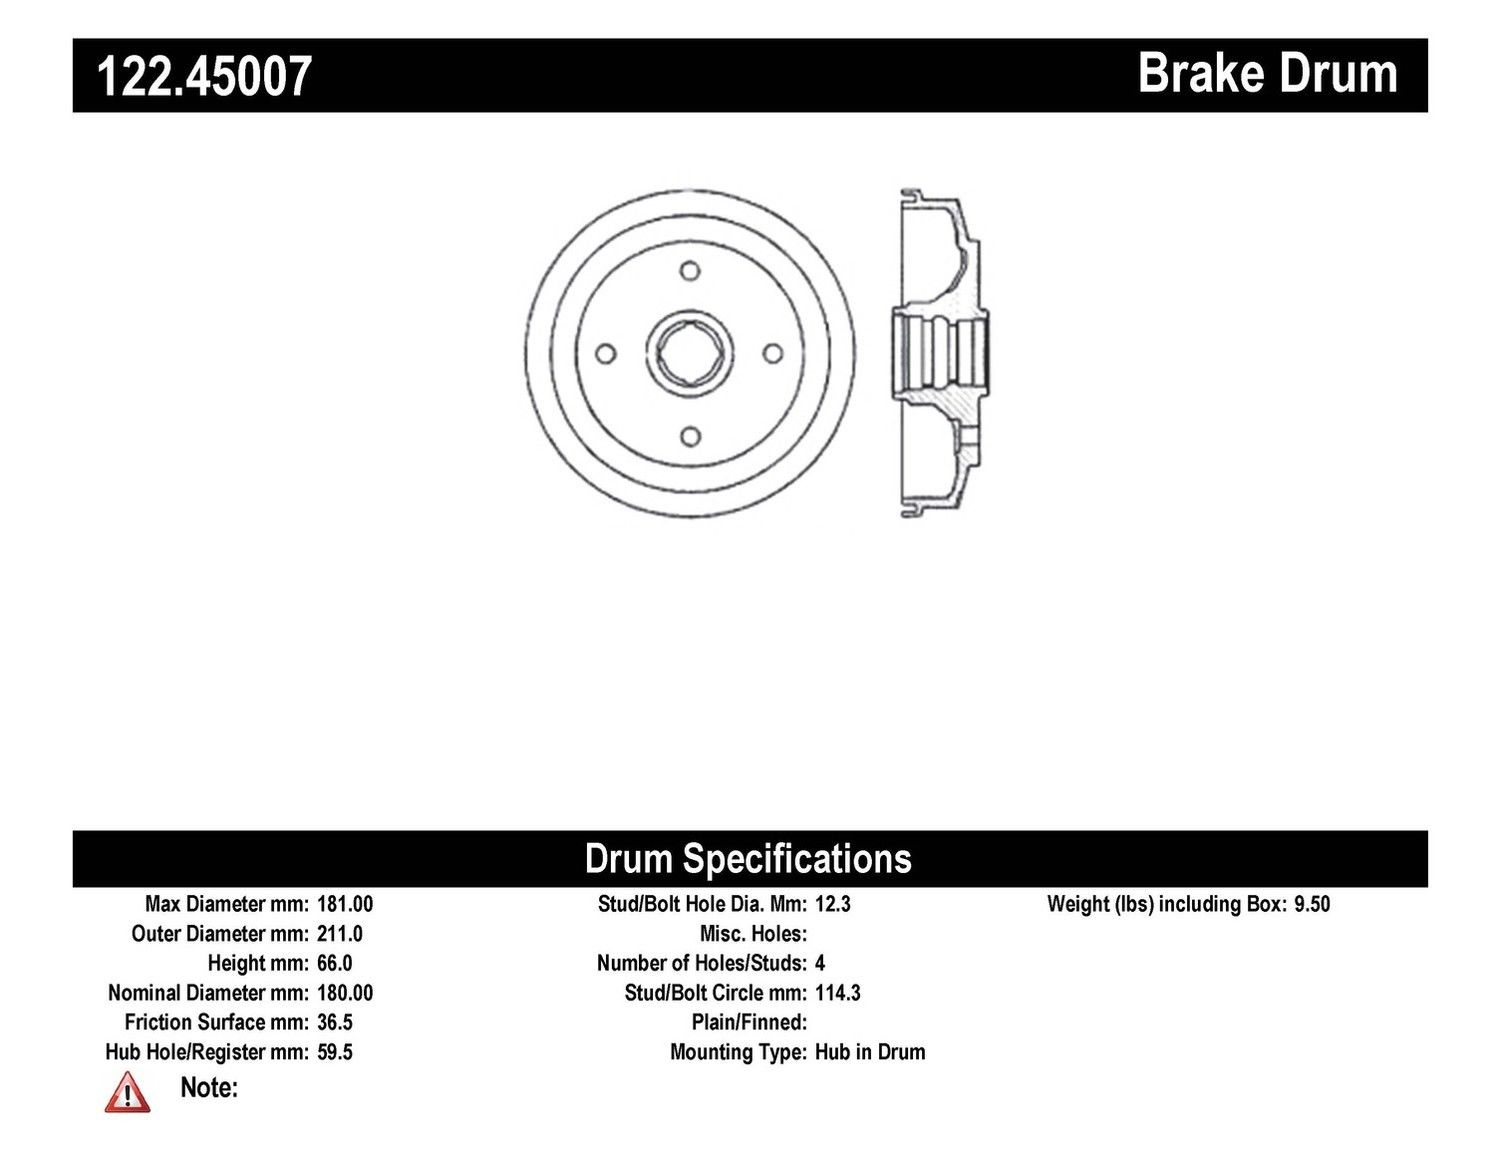 Centric Brake Drum Rear Mazda GLC Sedan 122.45007